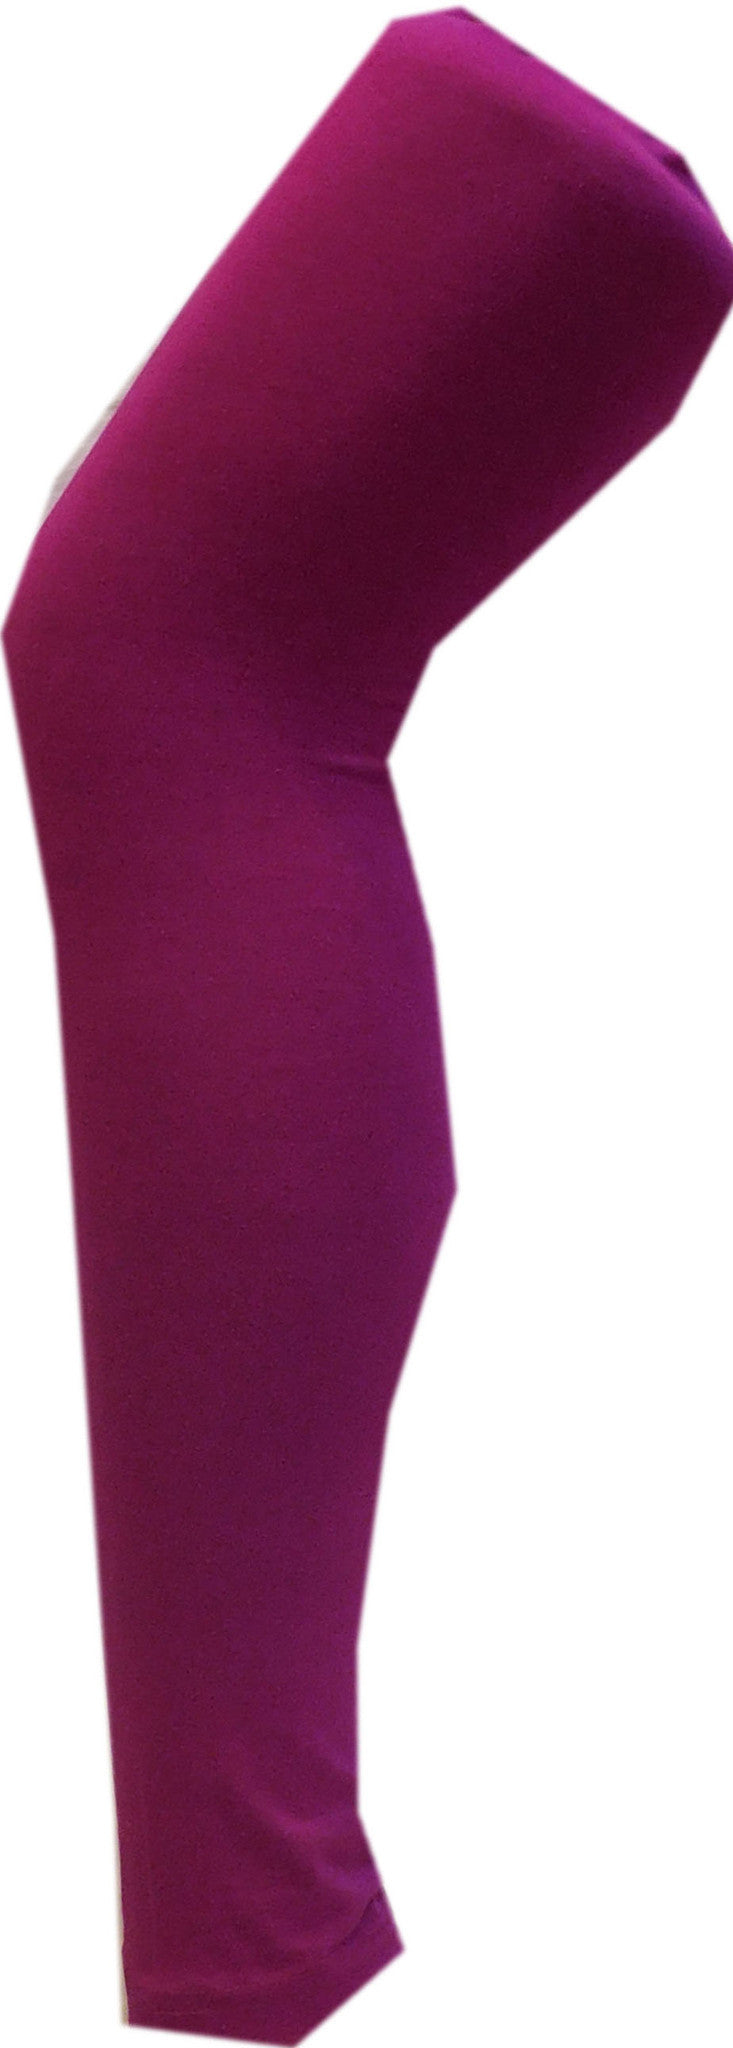 Wine Solid Leggings